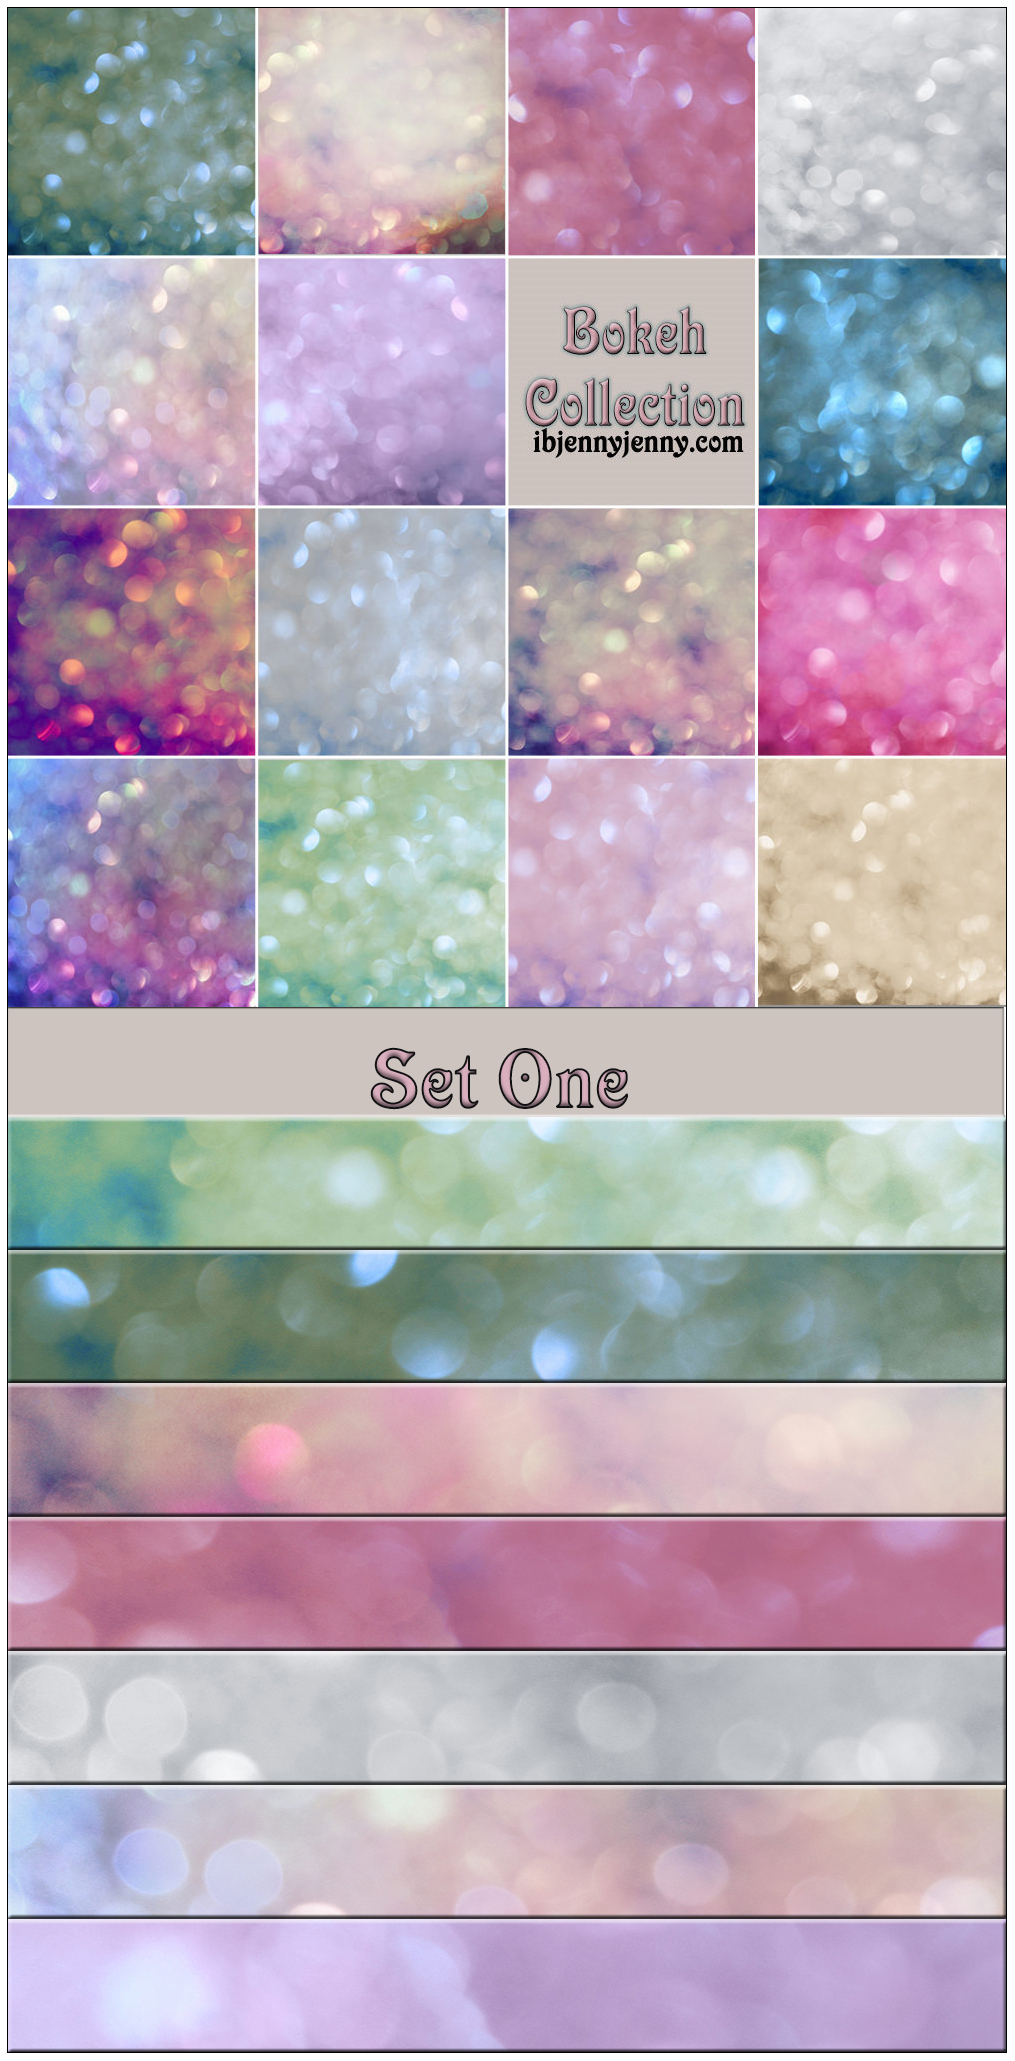 Bokeh Collection Set One by ibjennyjenny